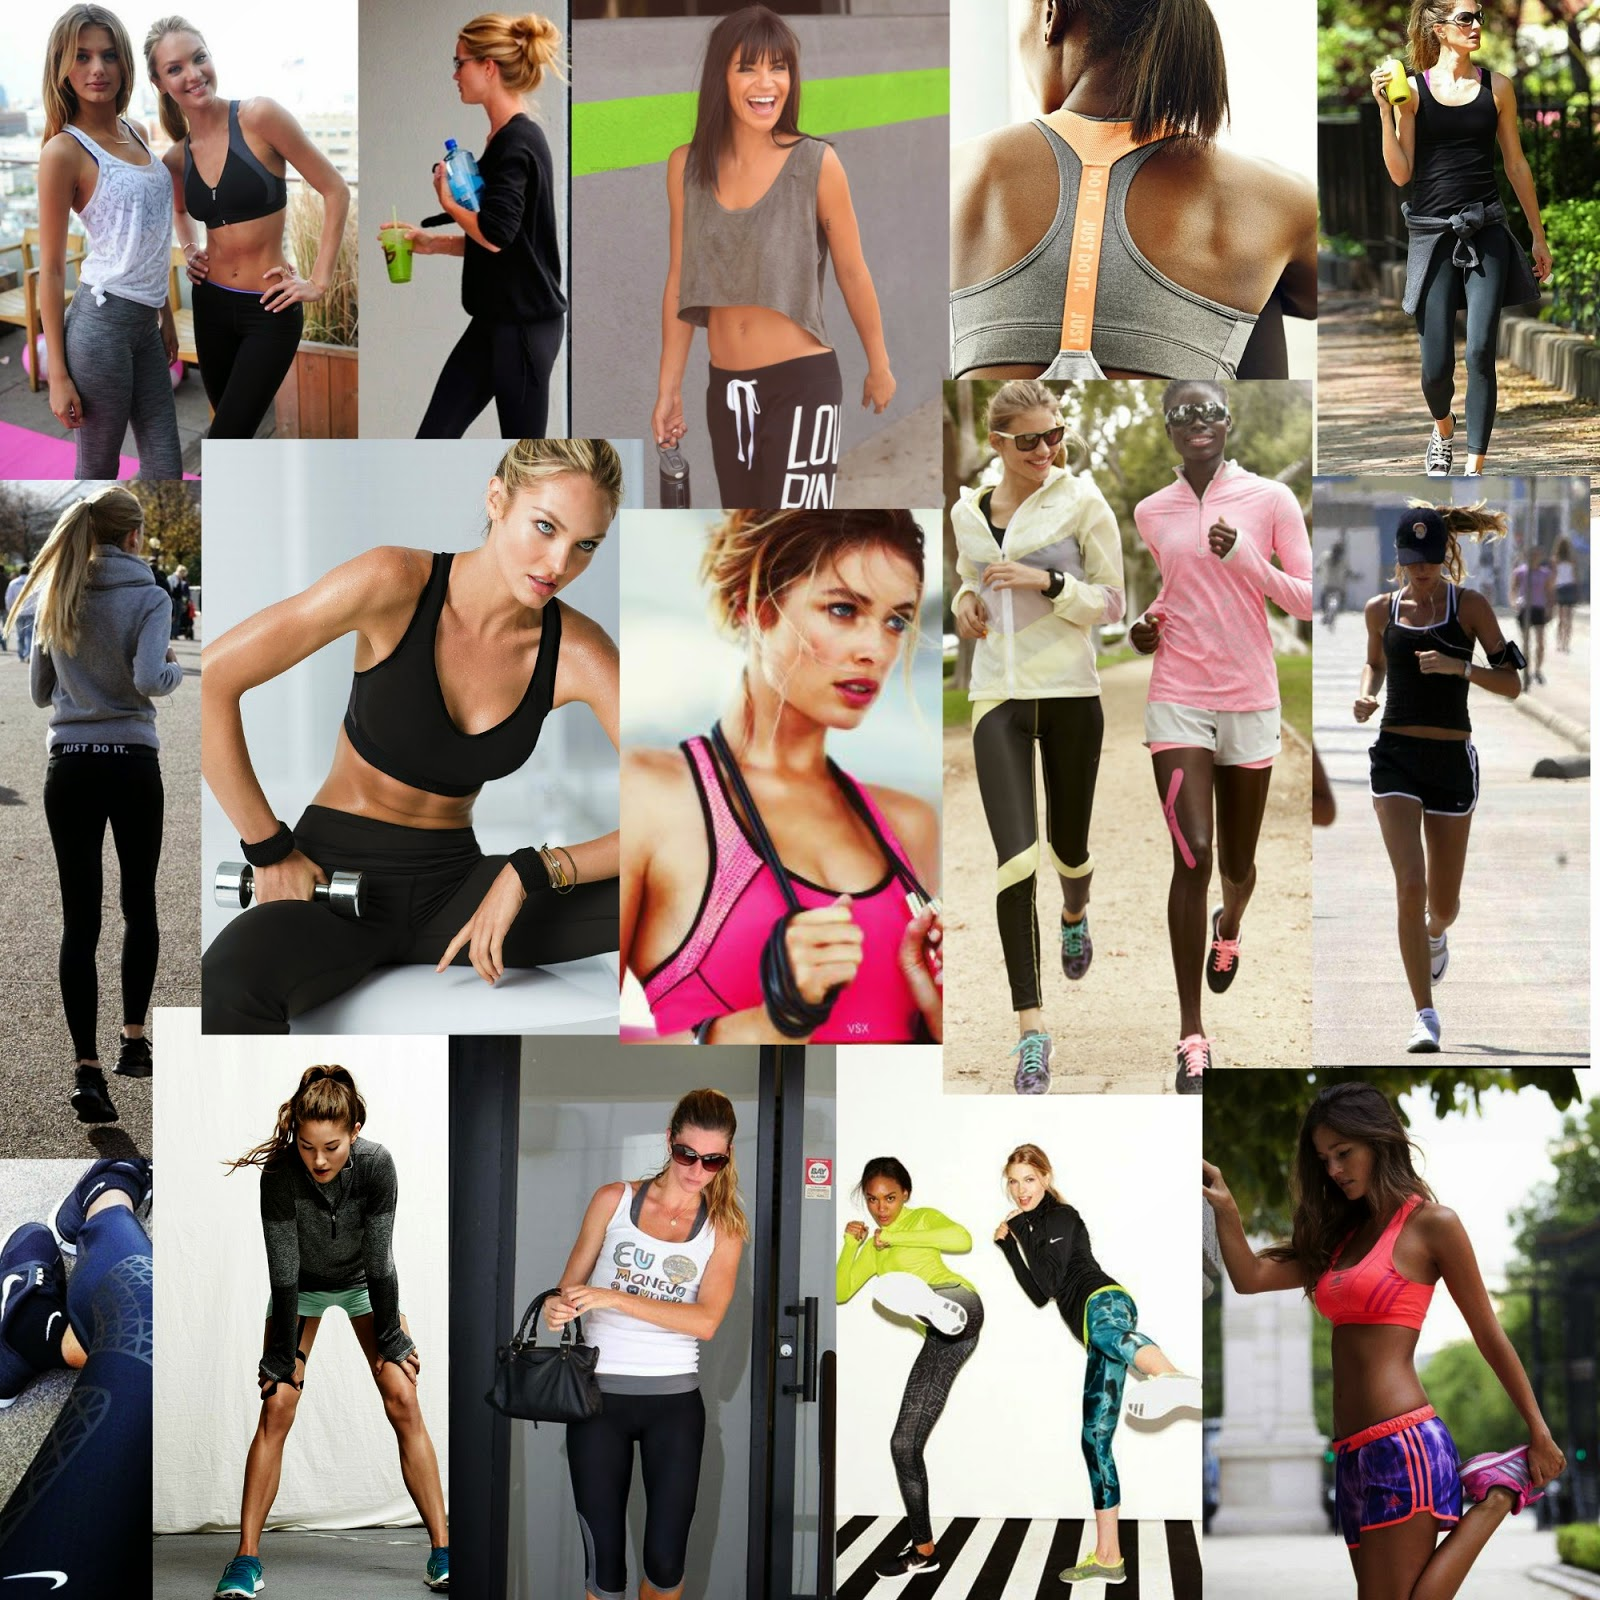 Just DO IT. Gisele gym. Famosas Gym. Celebrities runners. Famosas moda running. Famosas yoga. Famosas Fitness. Famosas BKR. Famosas zapatillas Flúor